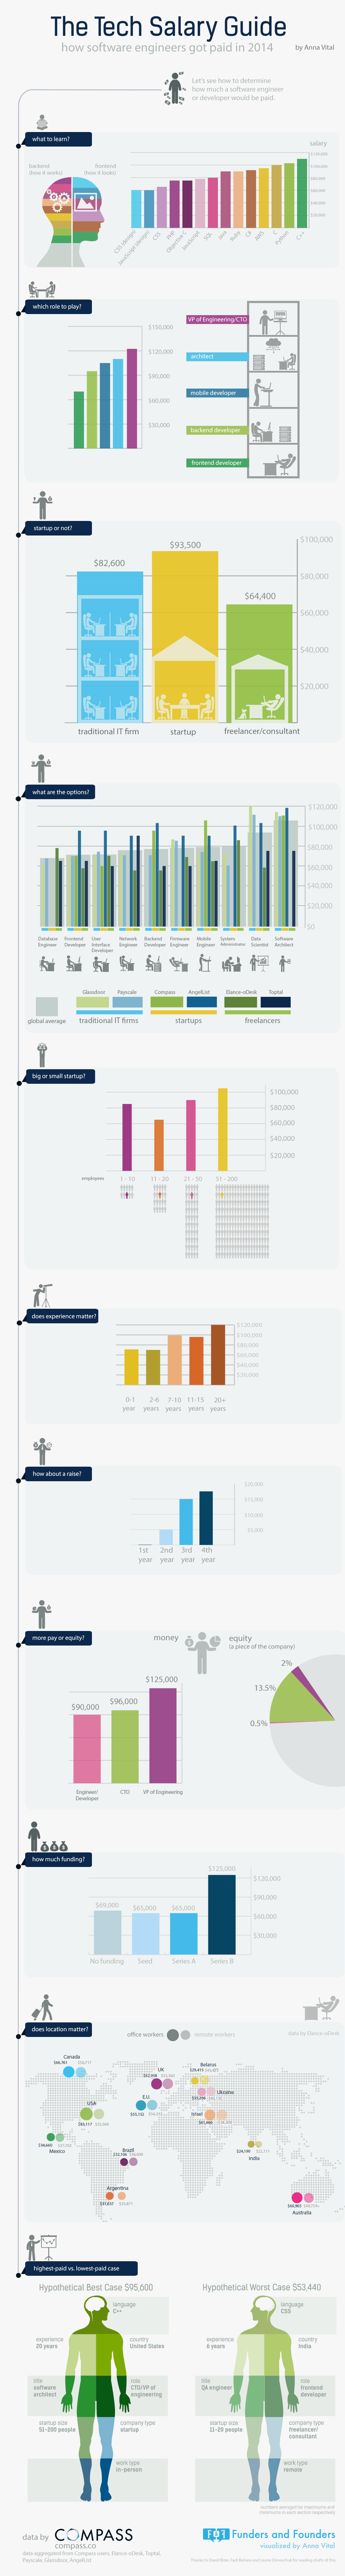 software-engineer-salary-2014-infographic